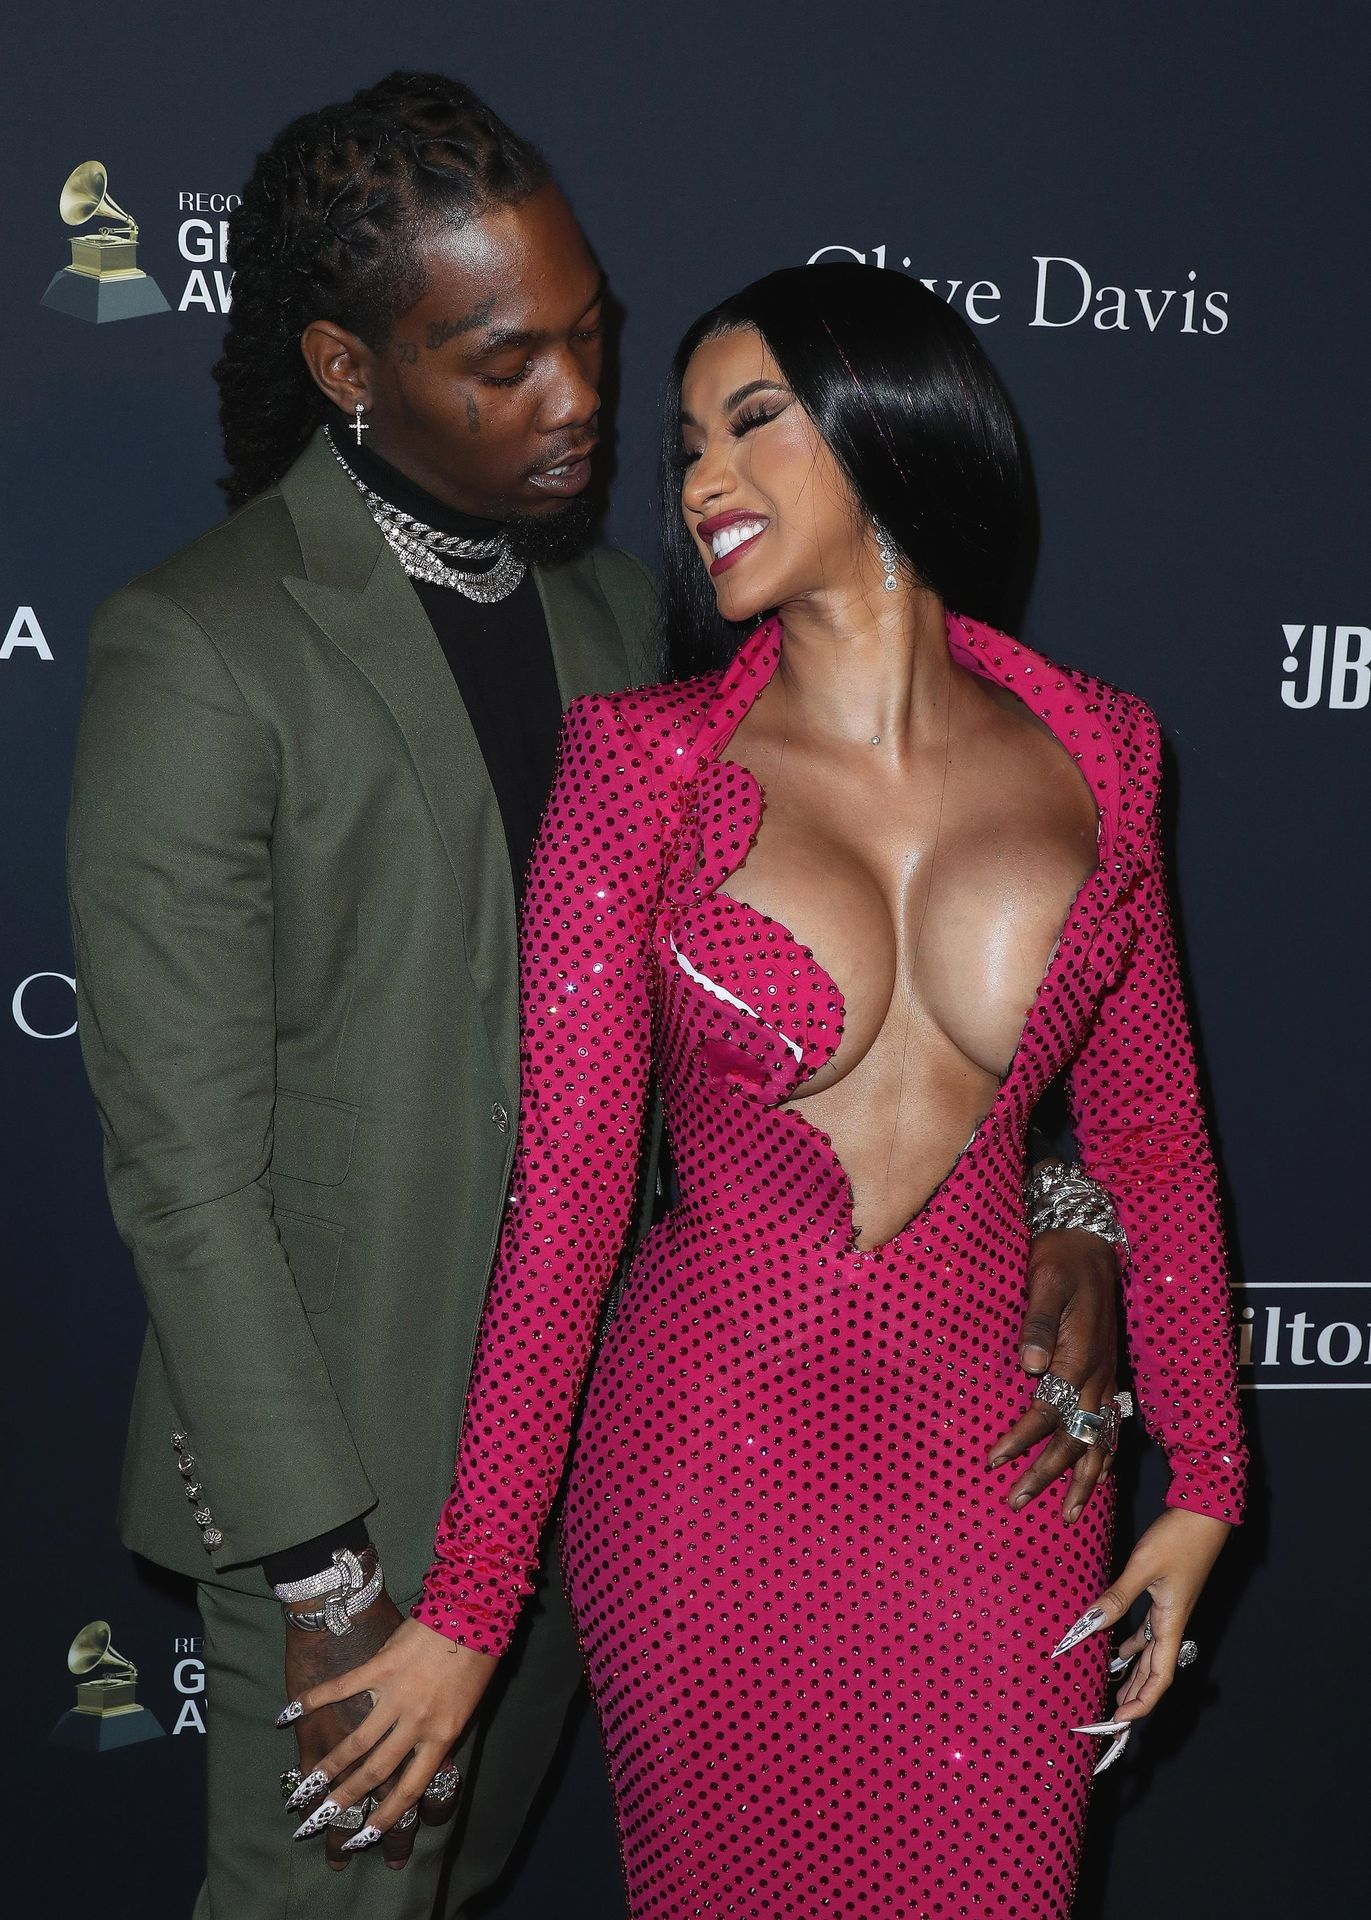 Offset Covers Cardi B's Boobs To Avoid Wardrobe Malfunction At Clive Davis Pre Grammy Party 0041